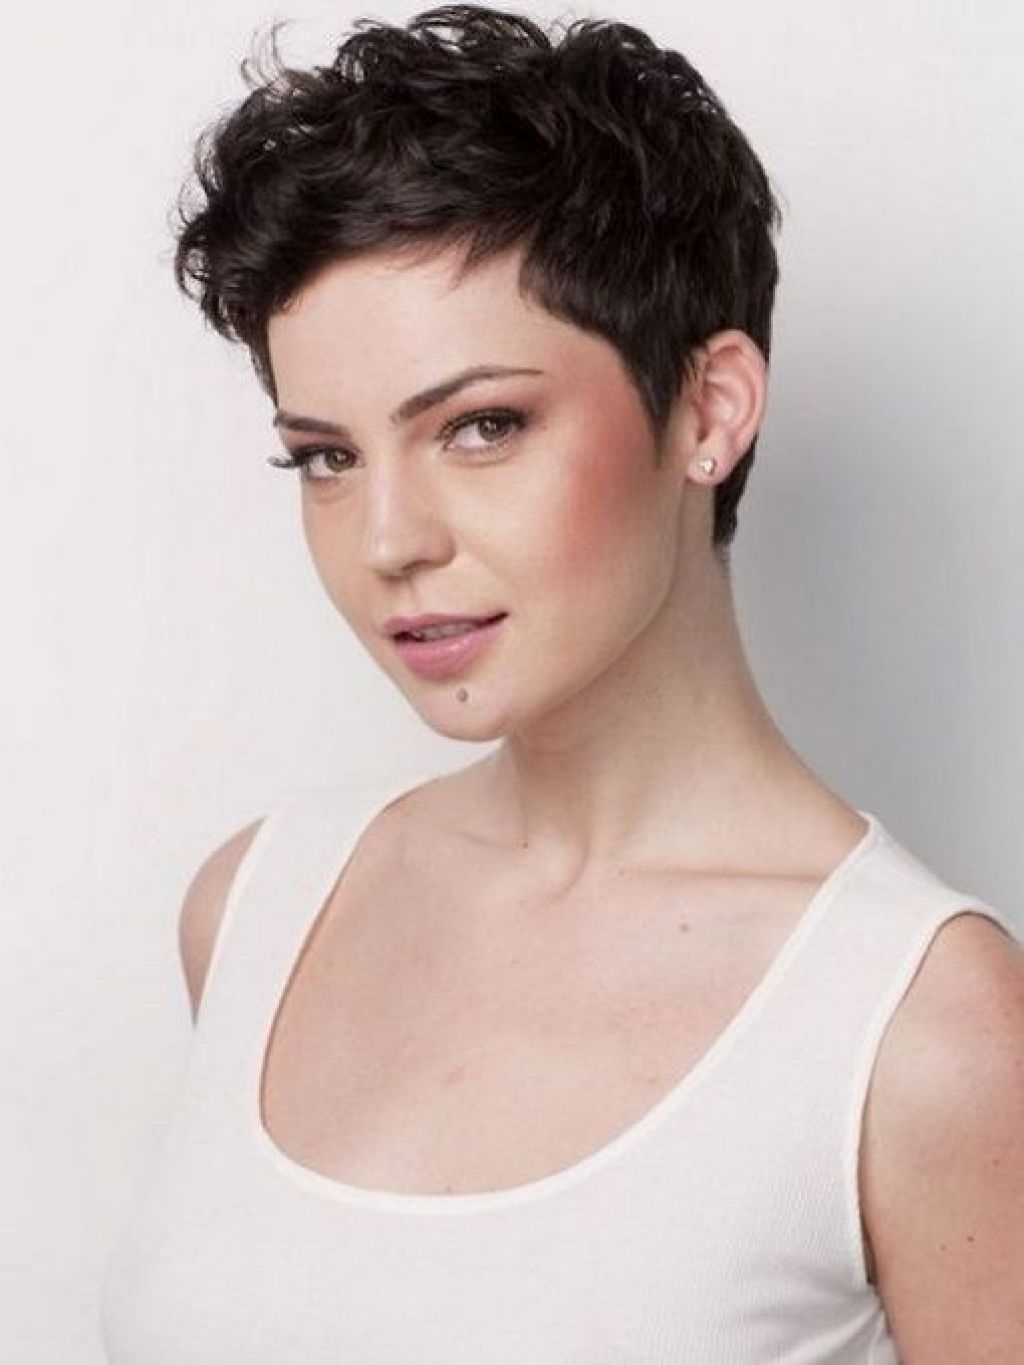 Short Curly Pixie Haircuts | Styles | Pinterest | Curly Pixie Throughout 2018 Long Pixie Hairstyles For Curly Hair (View 12 of 15)